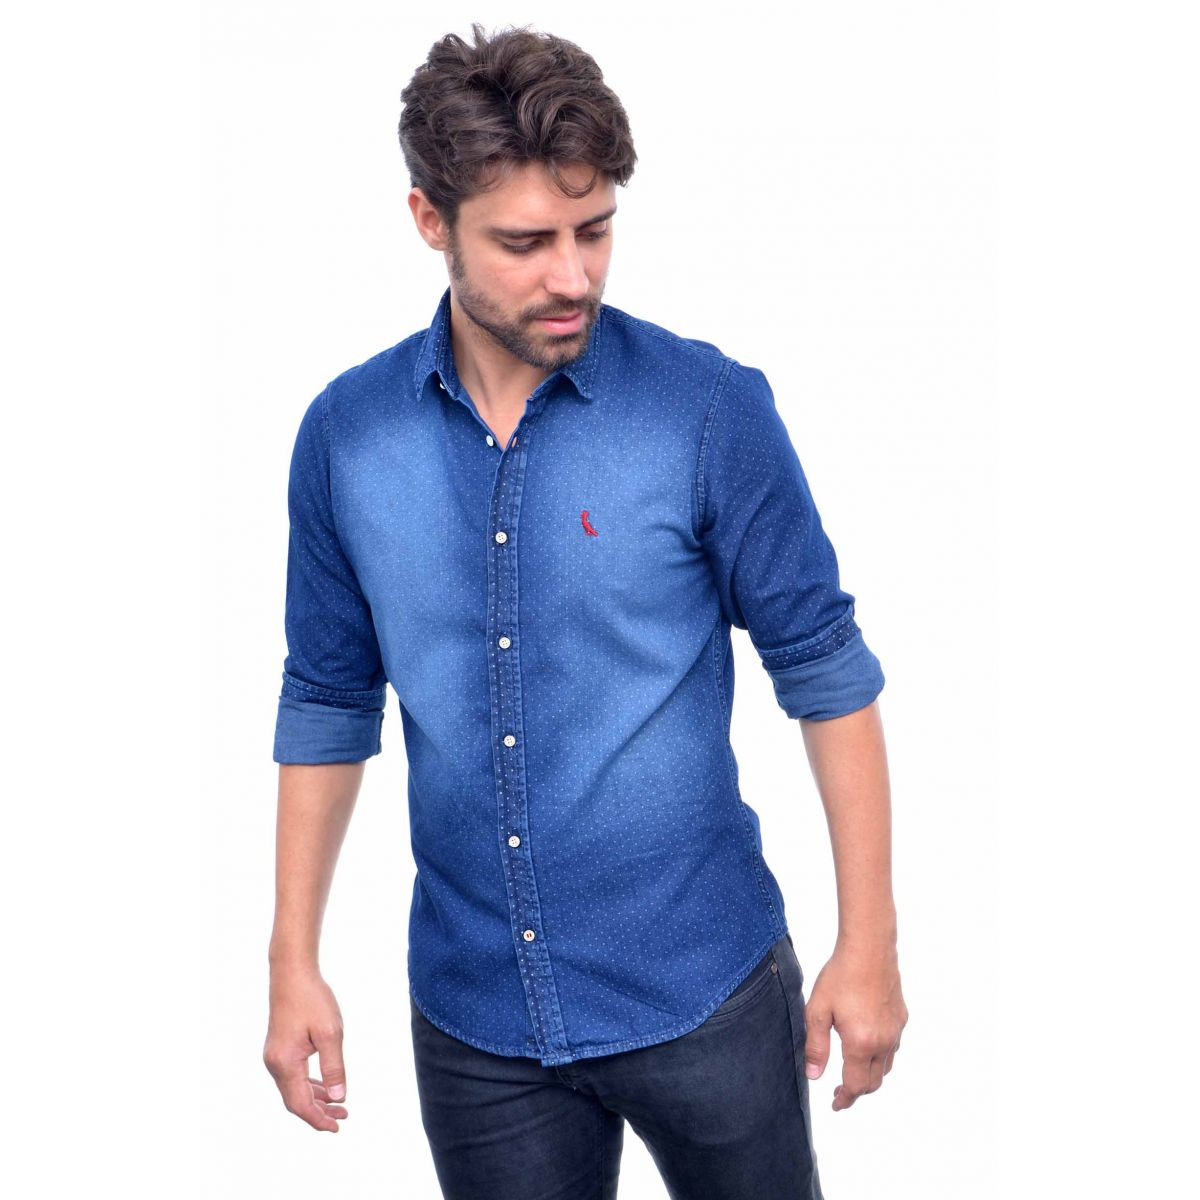 2162cf8f8f Camisa Jeans Azul Poa RV Reserva Camisa Social Outlet Califórnia ...